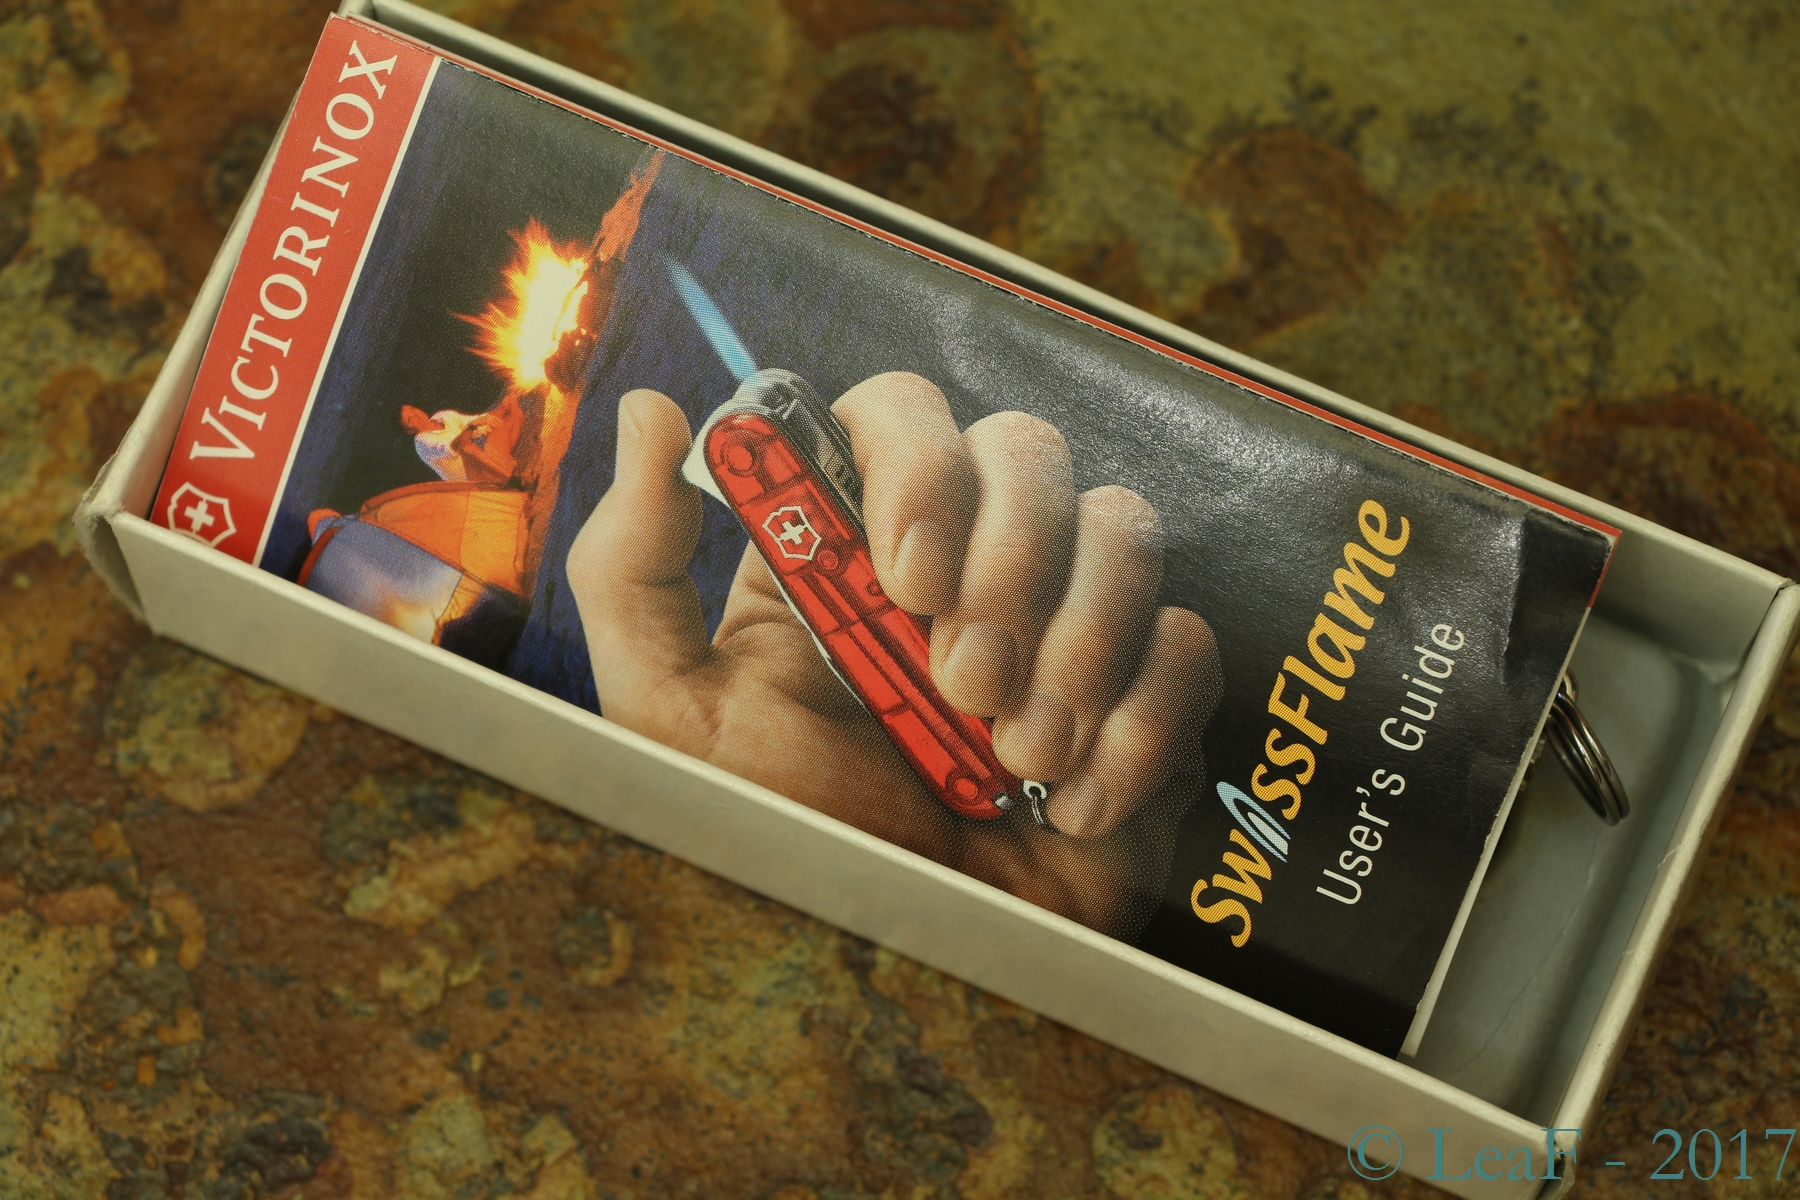 370 Swissflame Leaf S Victorinox Knives Collection